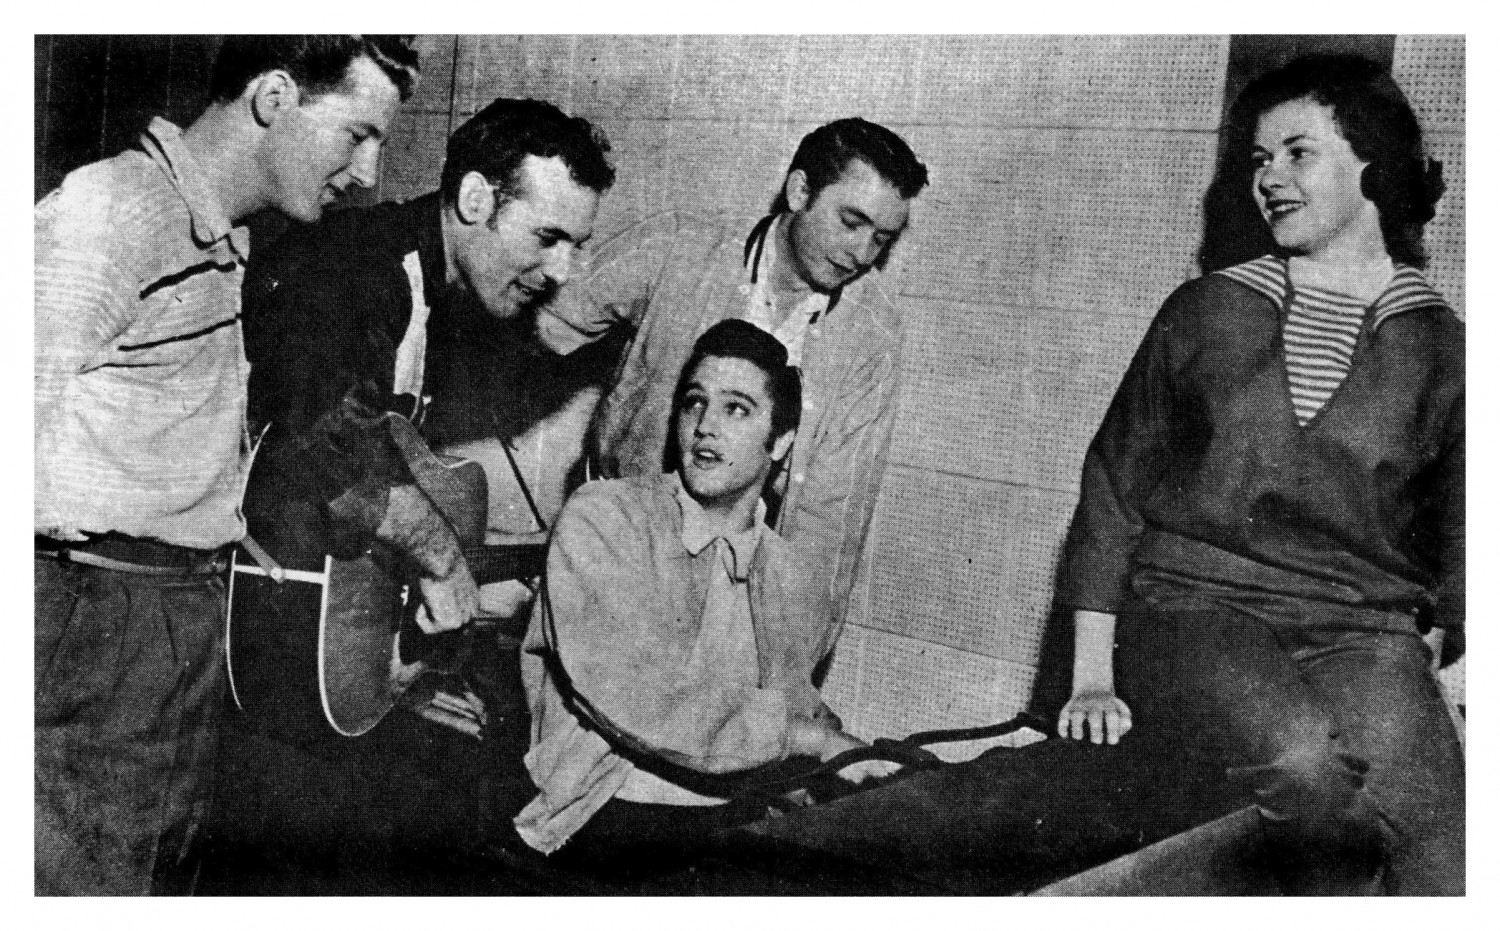 George Pierce - Sun Records - December 4, 1956 (03b)